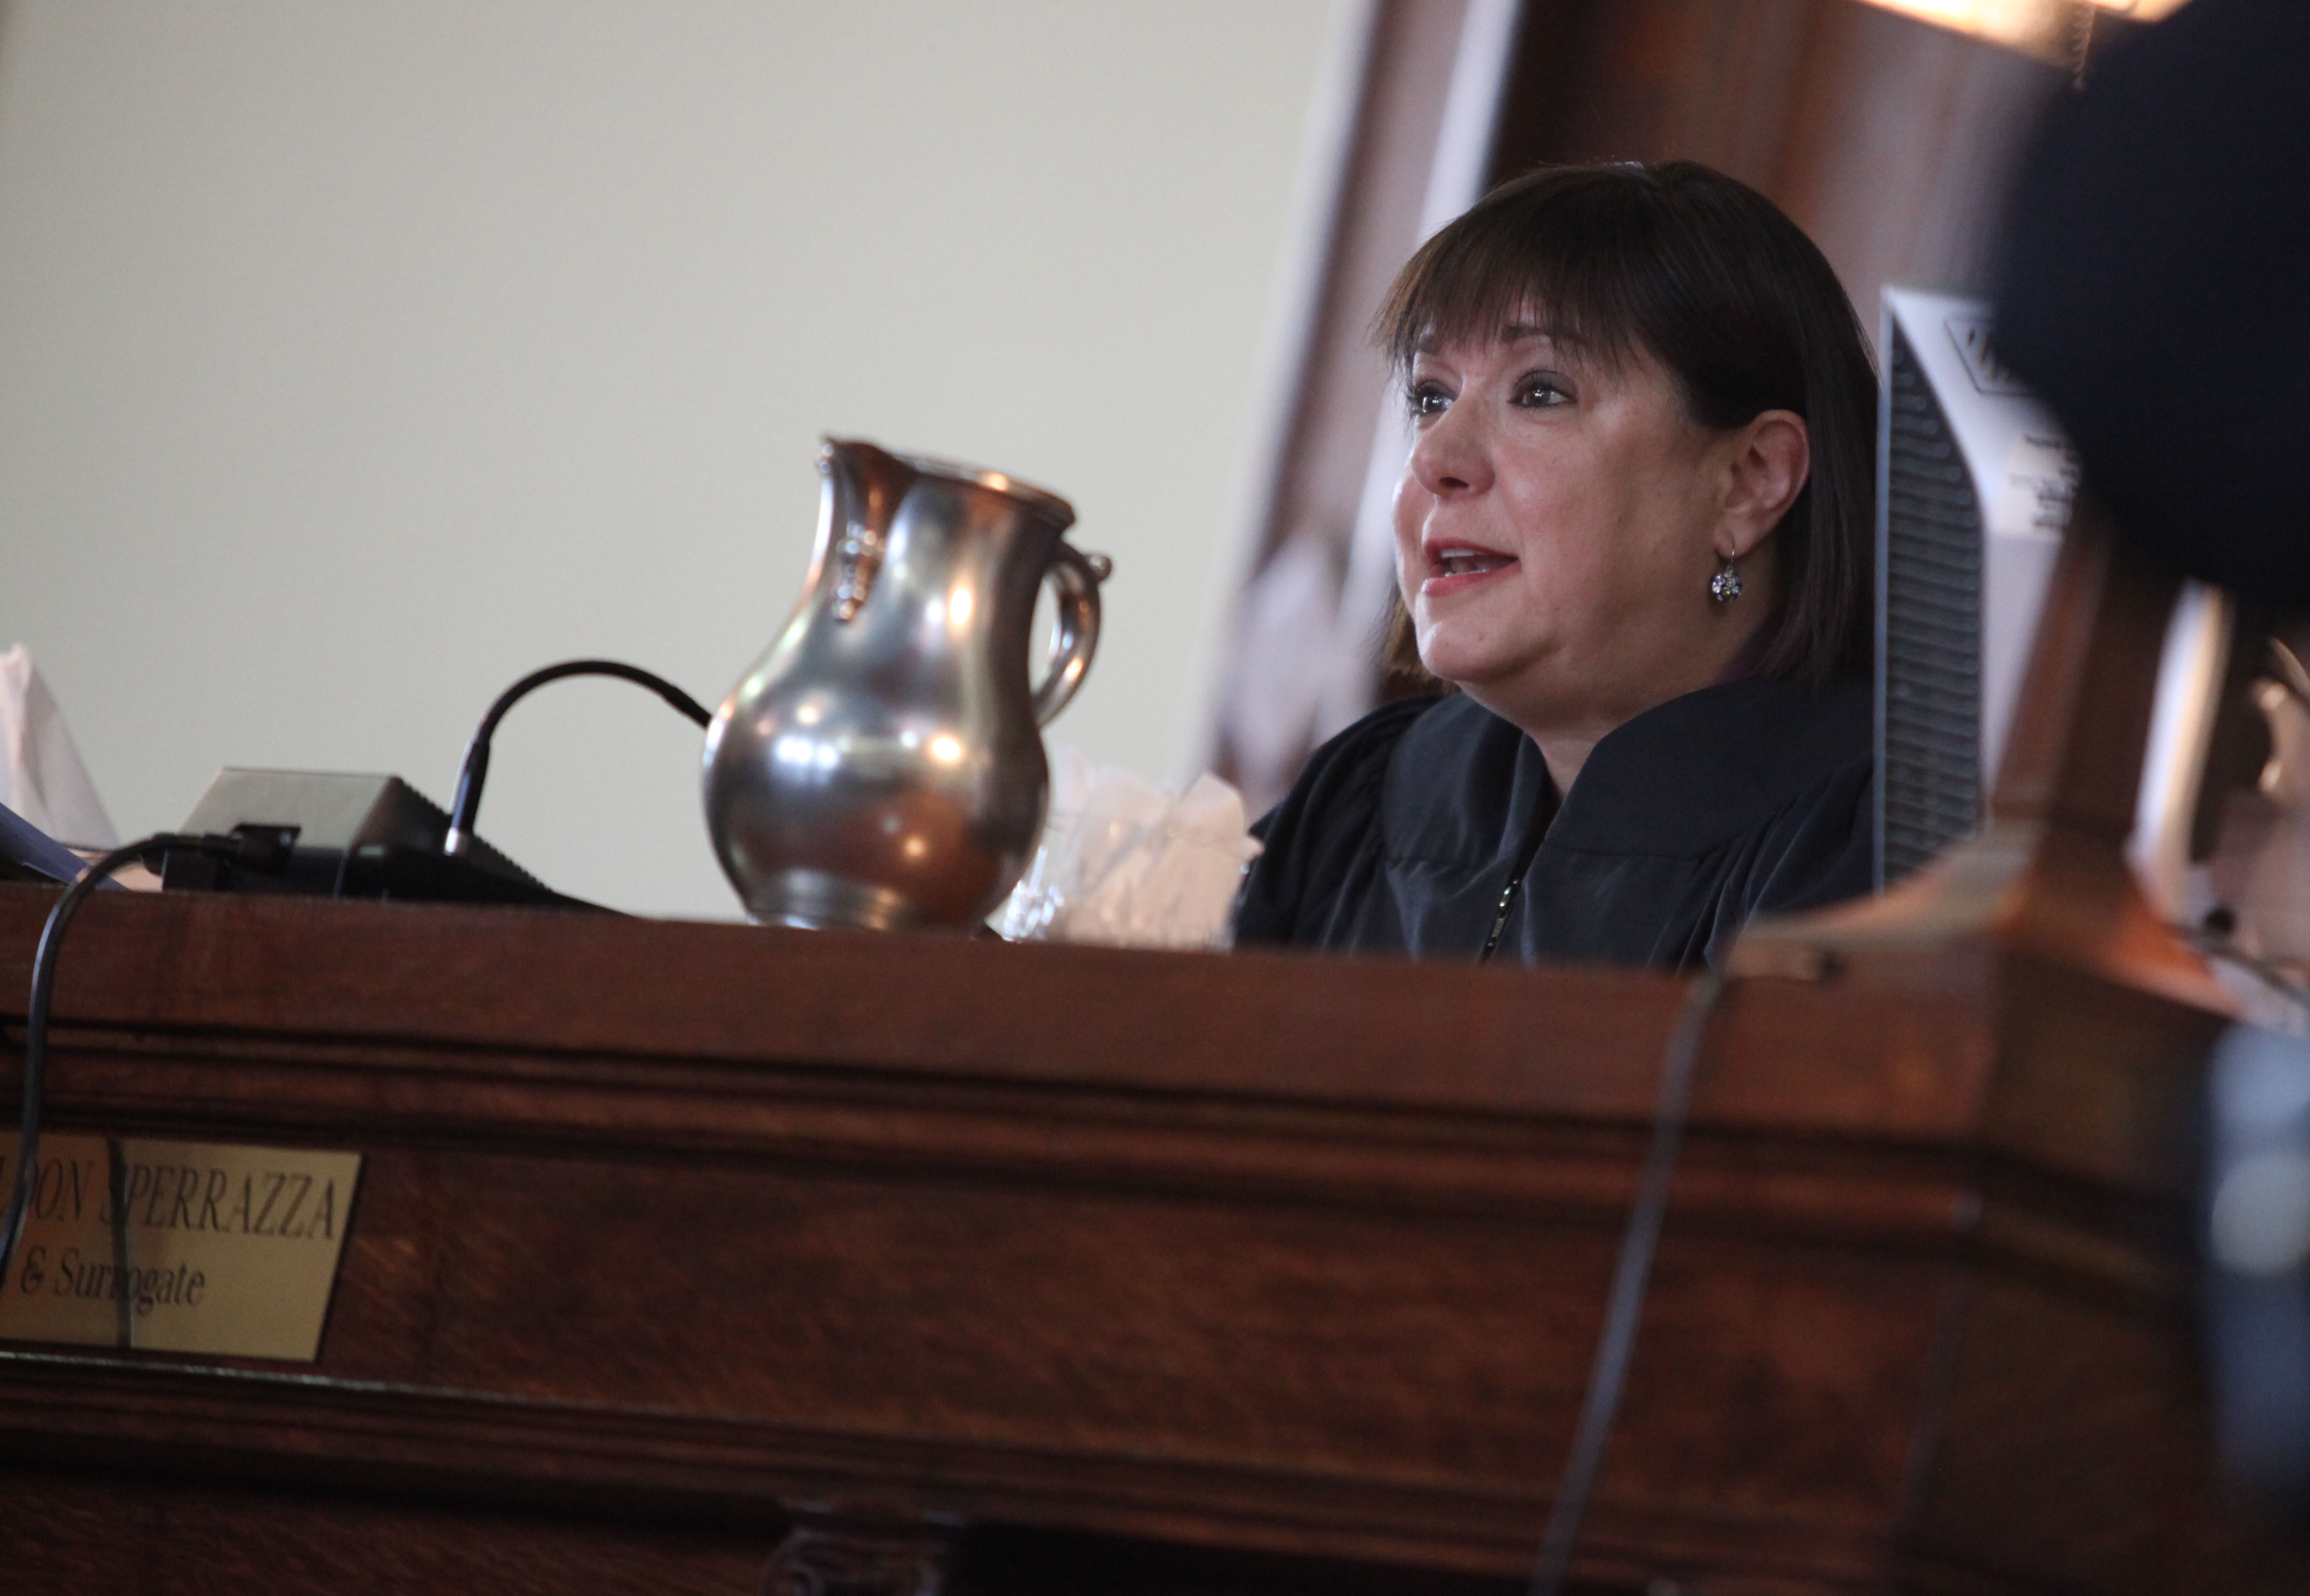 Niagara Judge Sara Sheldon, shown during the 2010 sentencing of Anthony J. Allen for the murder of Renee Greco, won't be able to hear criminal cases in Niagara County during 2017.  {Photo by Charles Lewis/Buffalo News/File photo.}